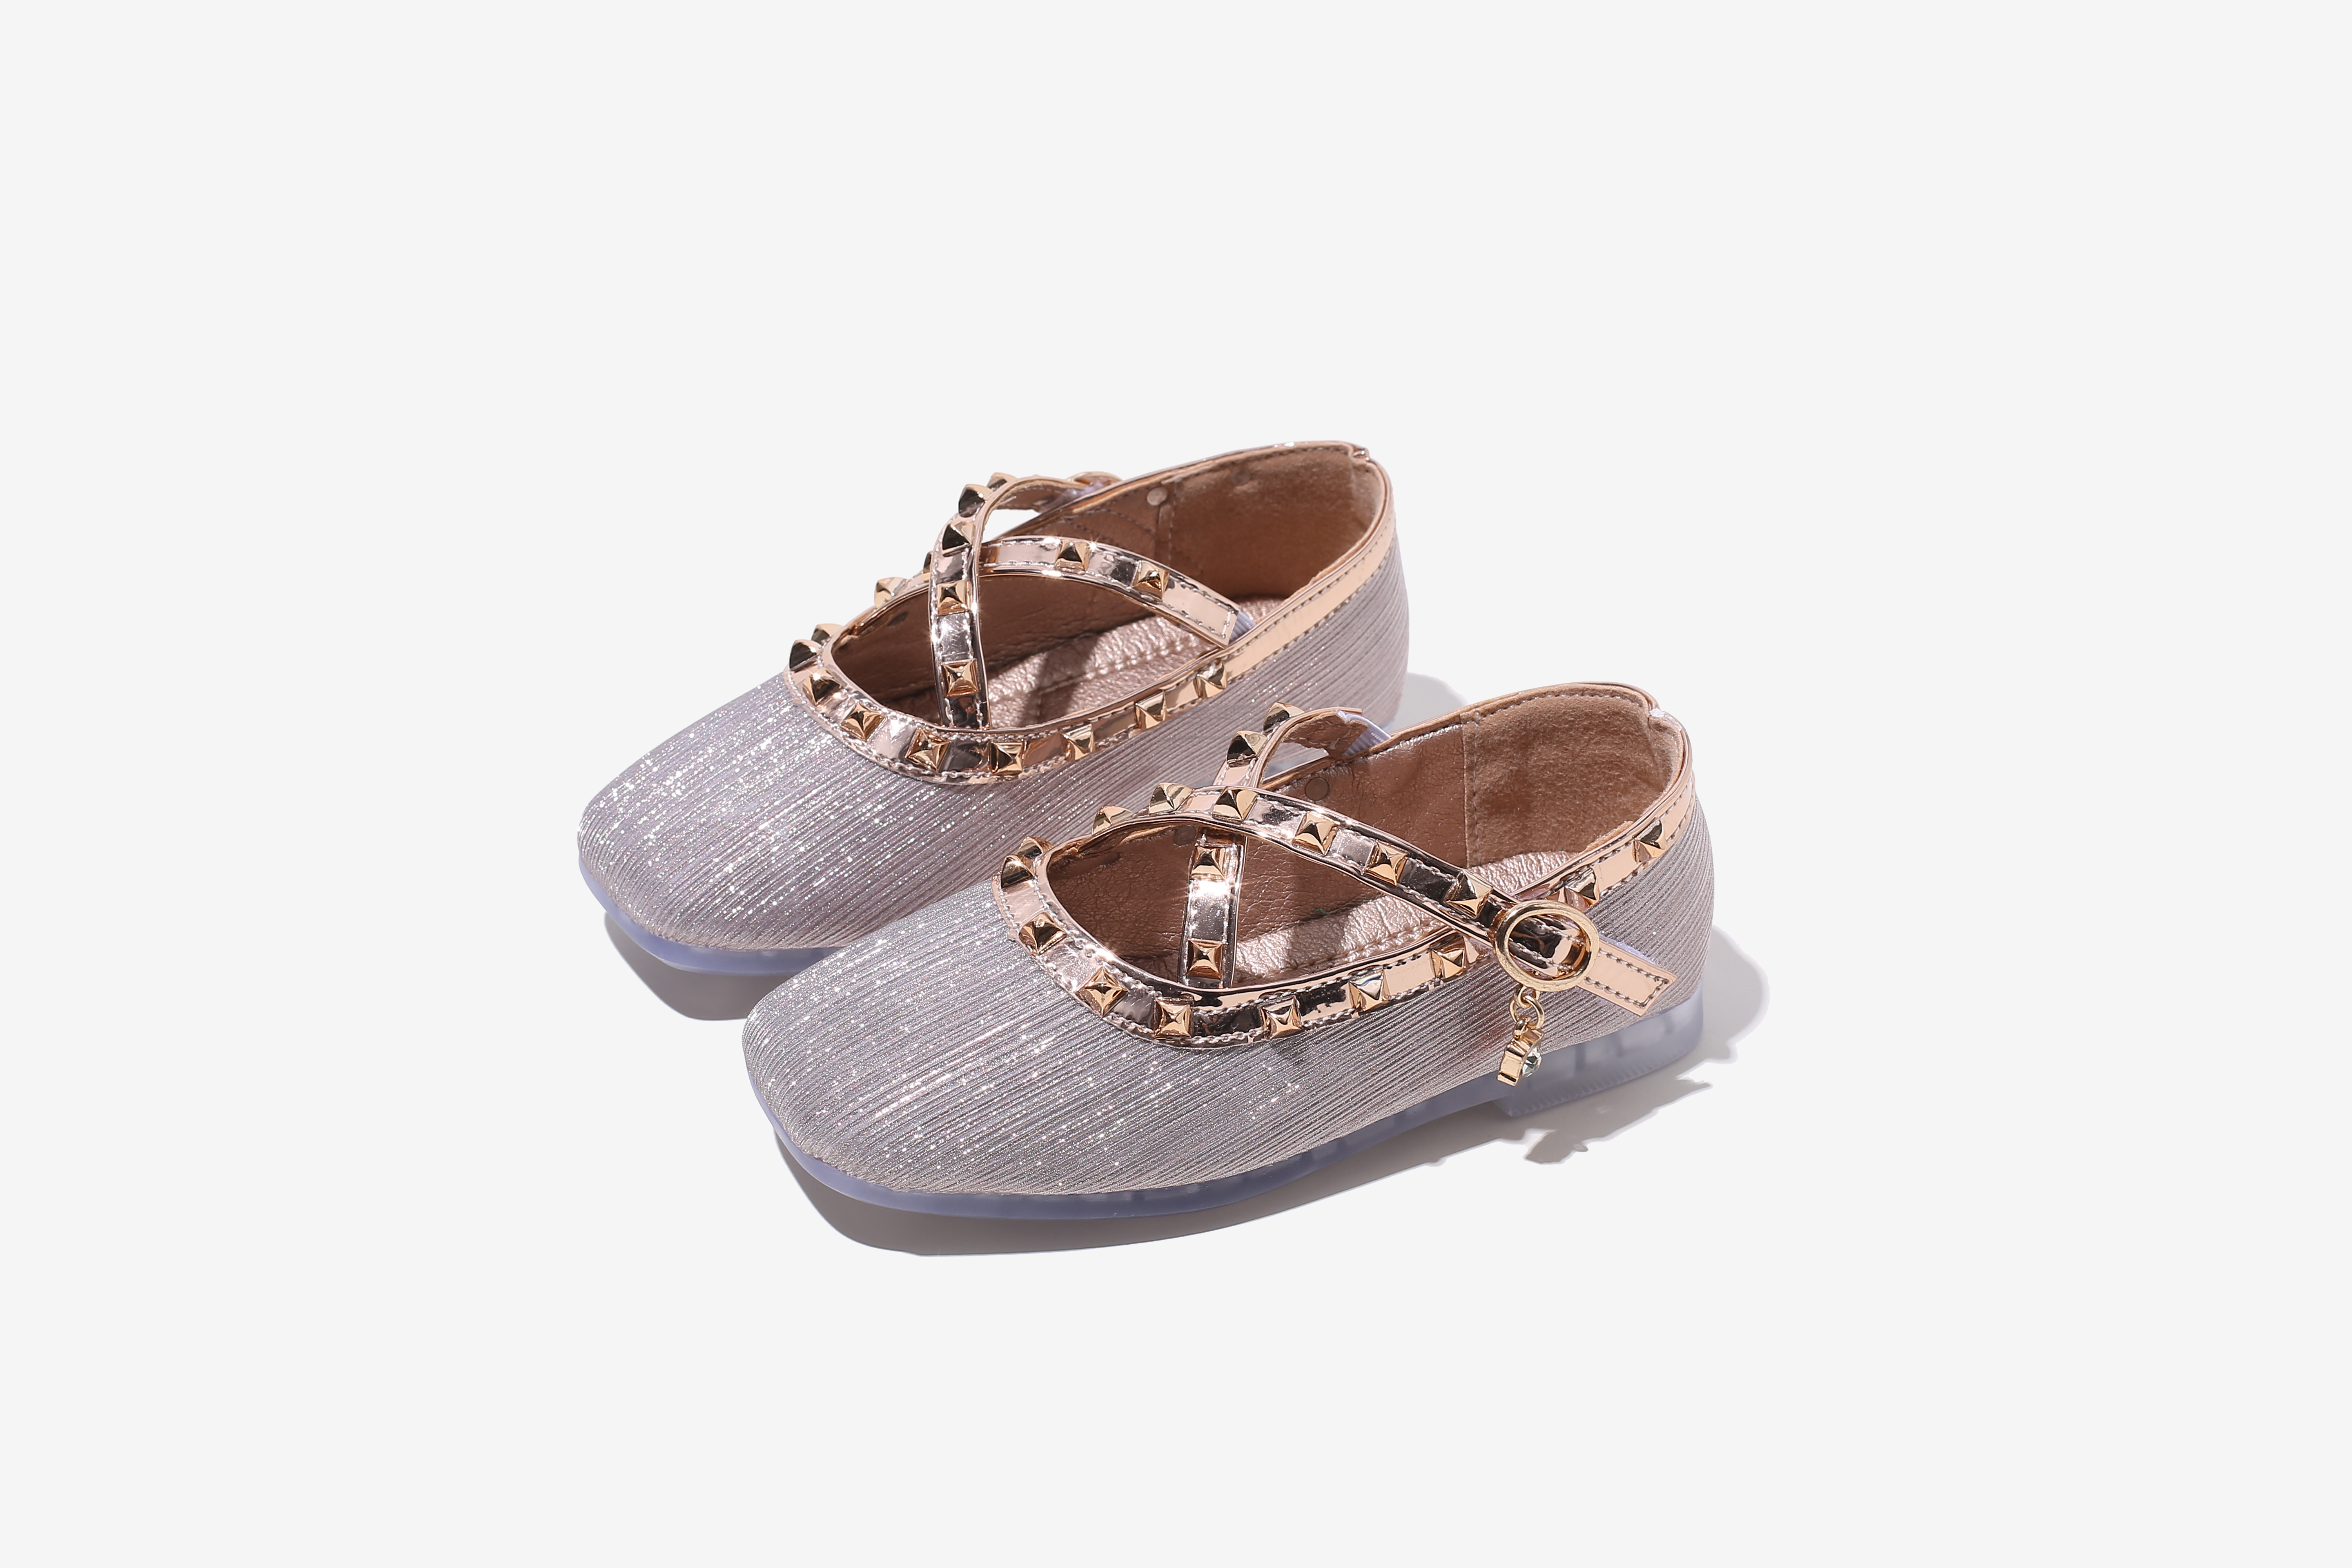 Special Design Widely Used Fashion Shoes Design For Girls Kids Shoes